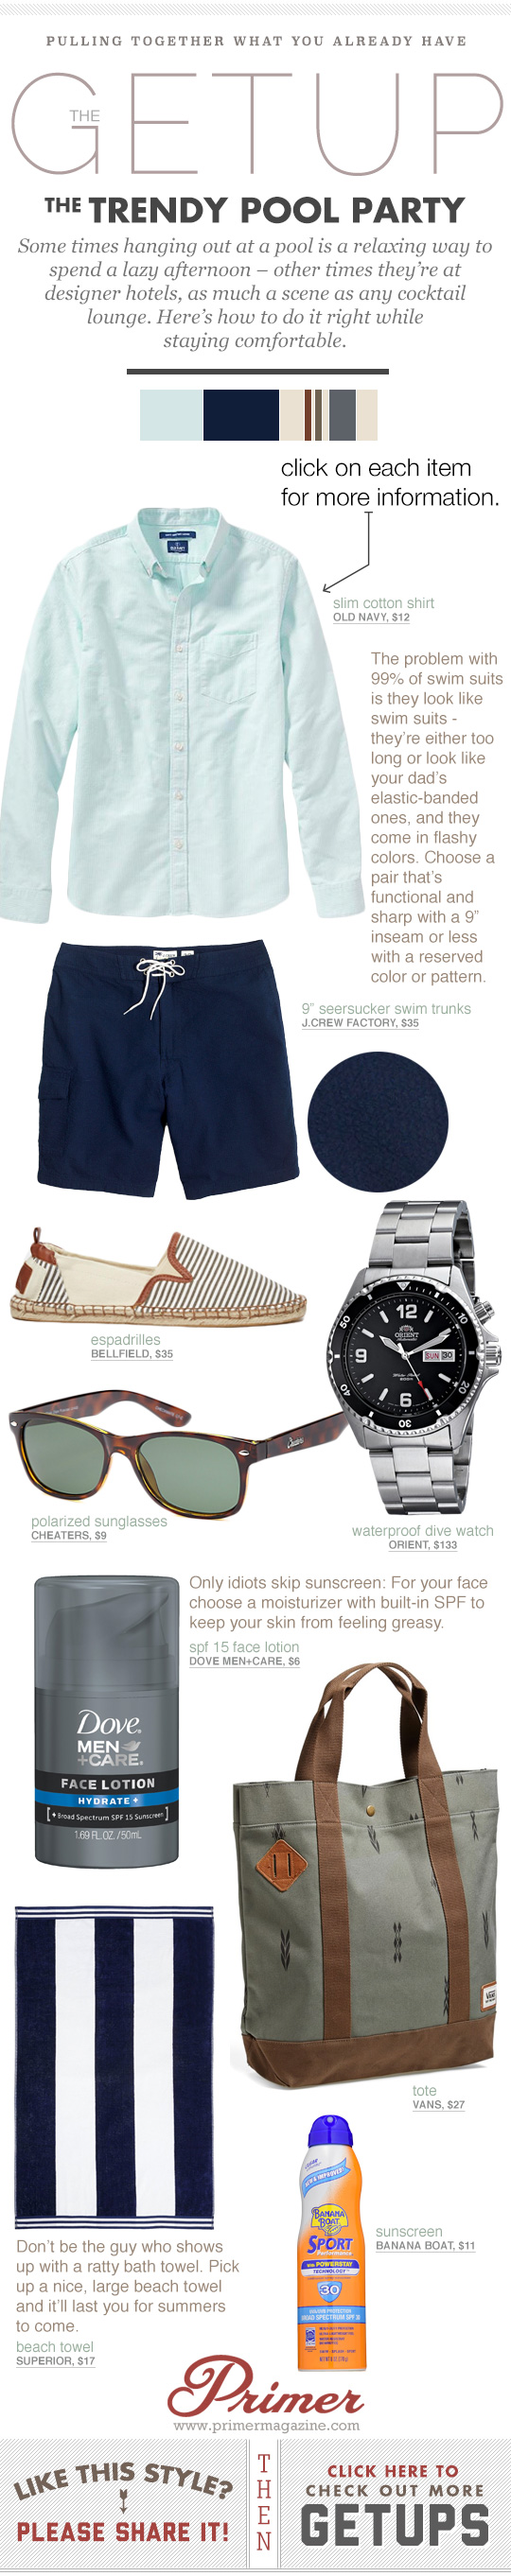 Trendy Pool Party Getup - Green shirt, blue shorts, espadrilles